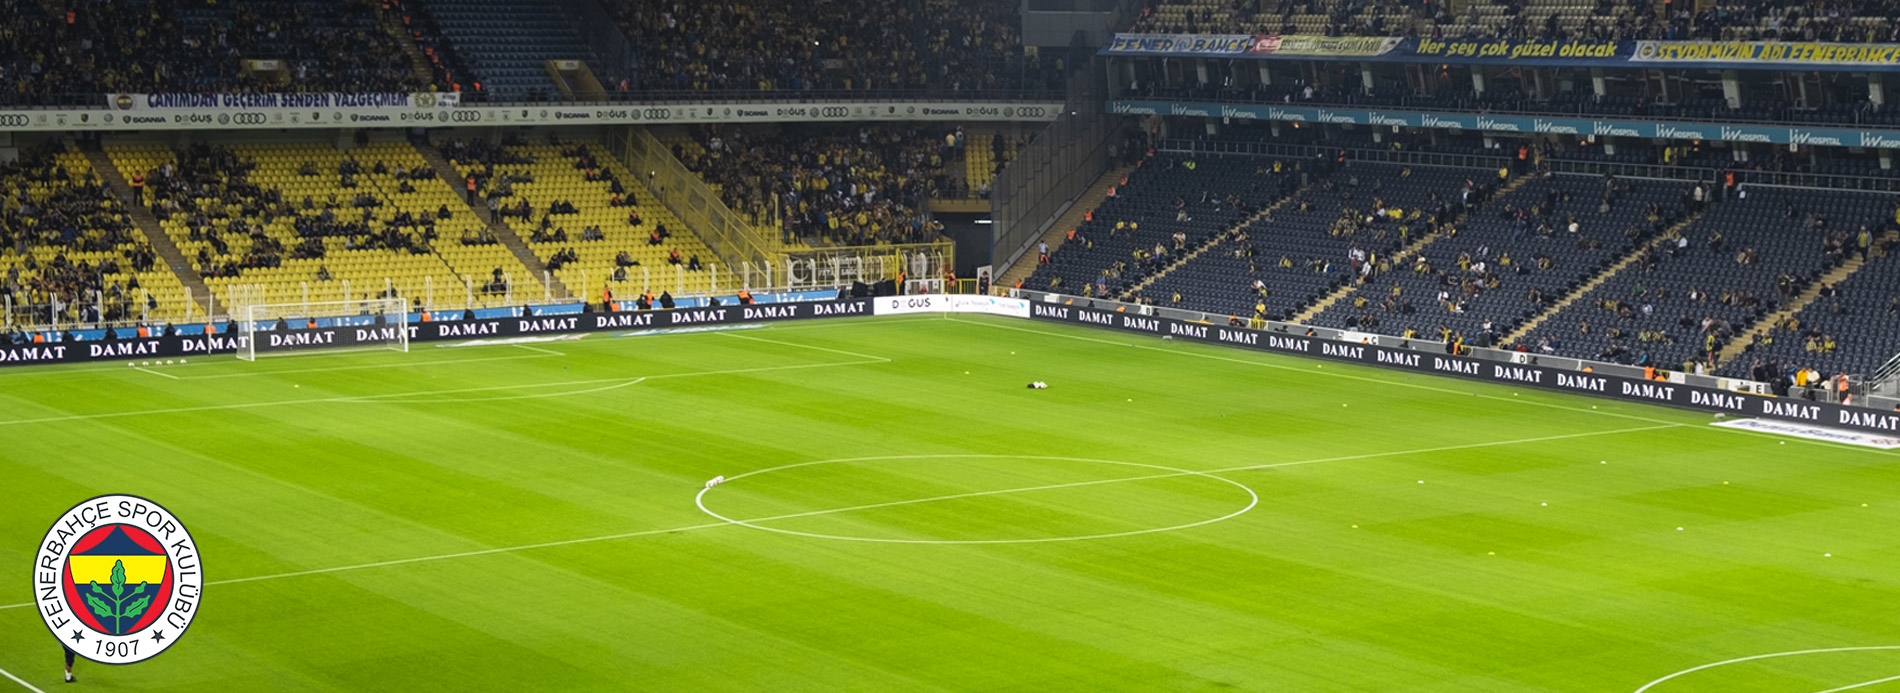 Fenerbahçe Football Club Perimeter Led Screen Project